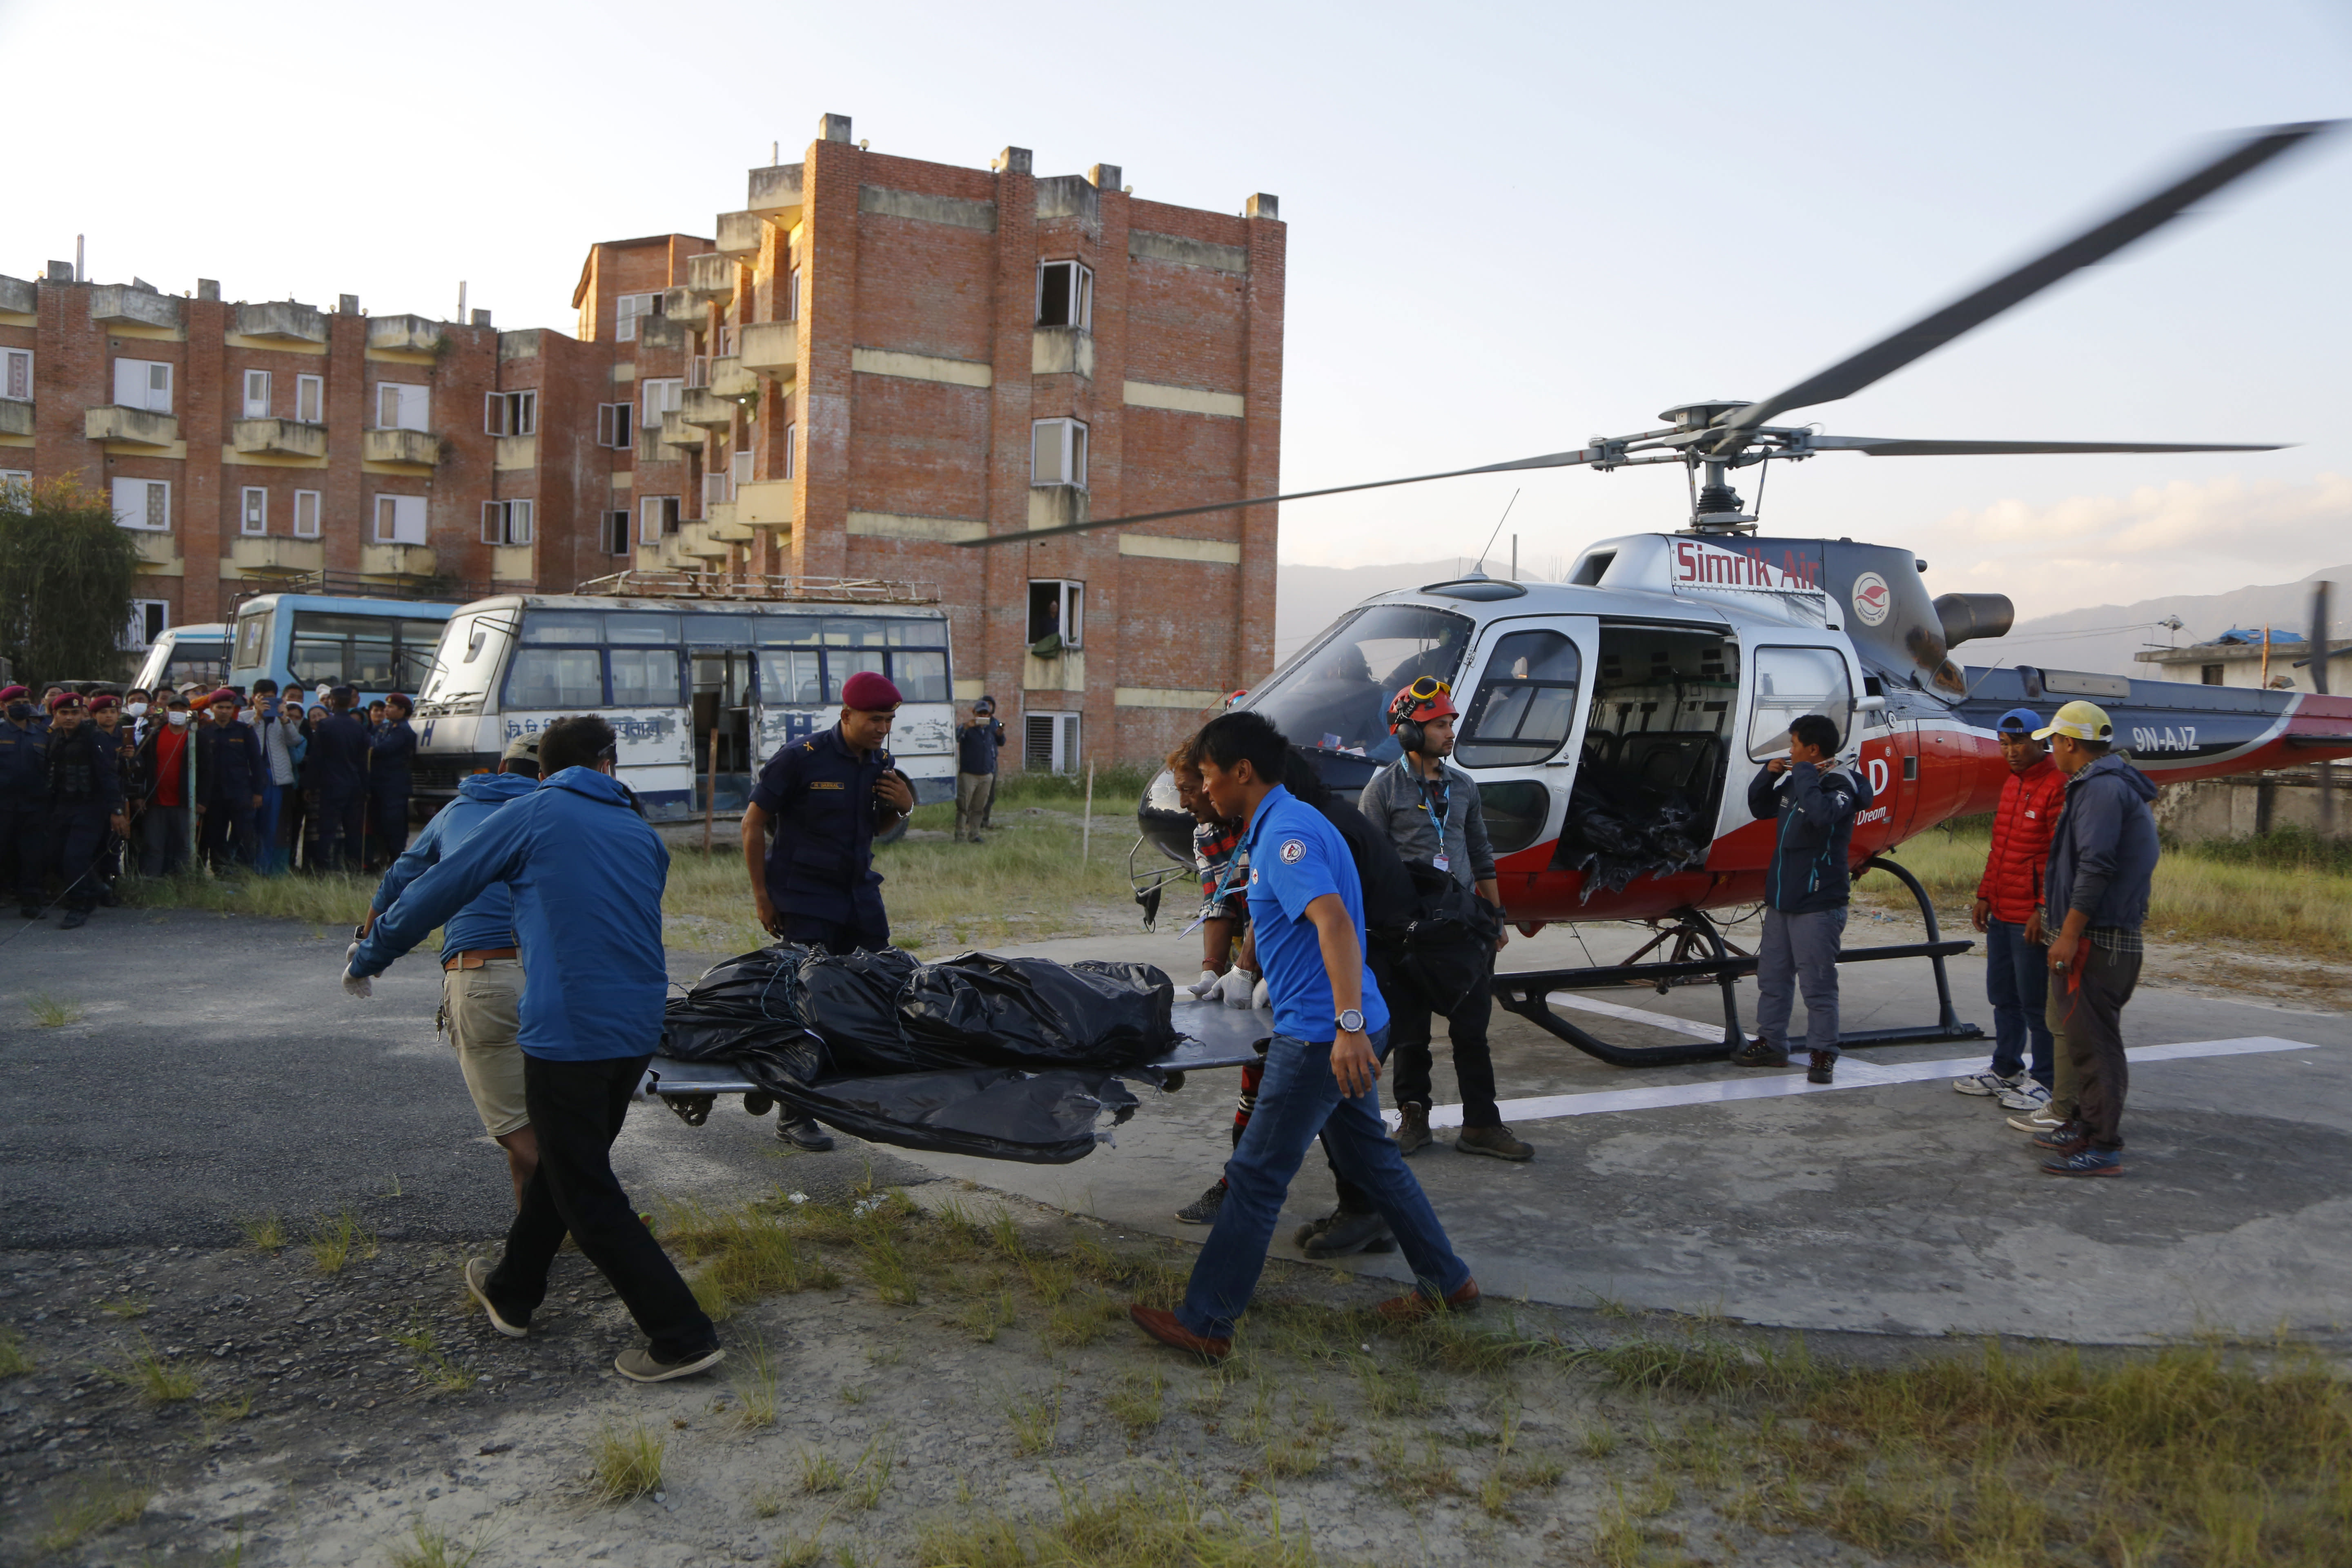 Officials unload the bodies after a helicopter carrying bodies of those killed in Gurja Himal mountain arrives at the Teaching hospital in Kathmandu, Nepal, Sunday, Oct. 14, 2018. Rescuers retrieved the bodies of five South Korean climbers and their four Nepalese guides from Gurja Himal mountain, where they were killed when their base camp was swept by a strong storm. (AP Photo/Niranjan Shrestha)